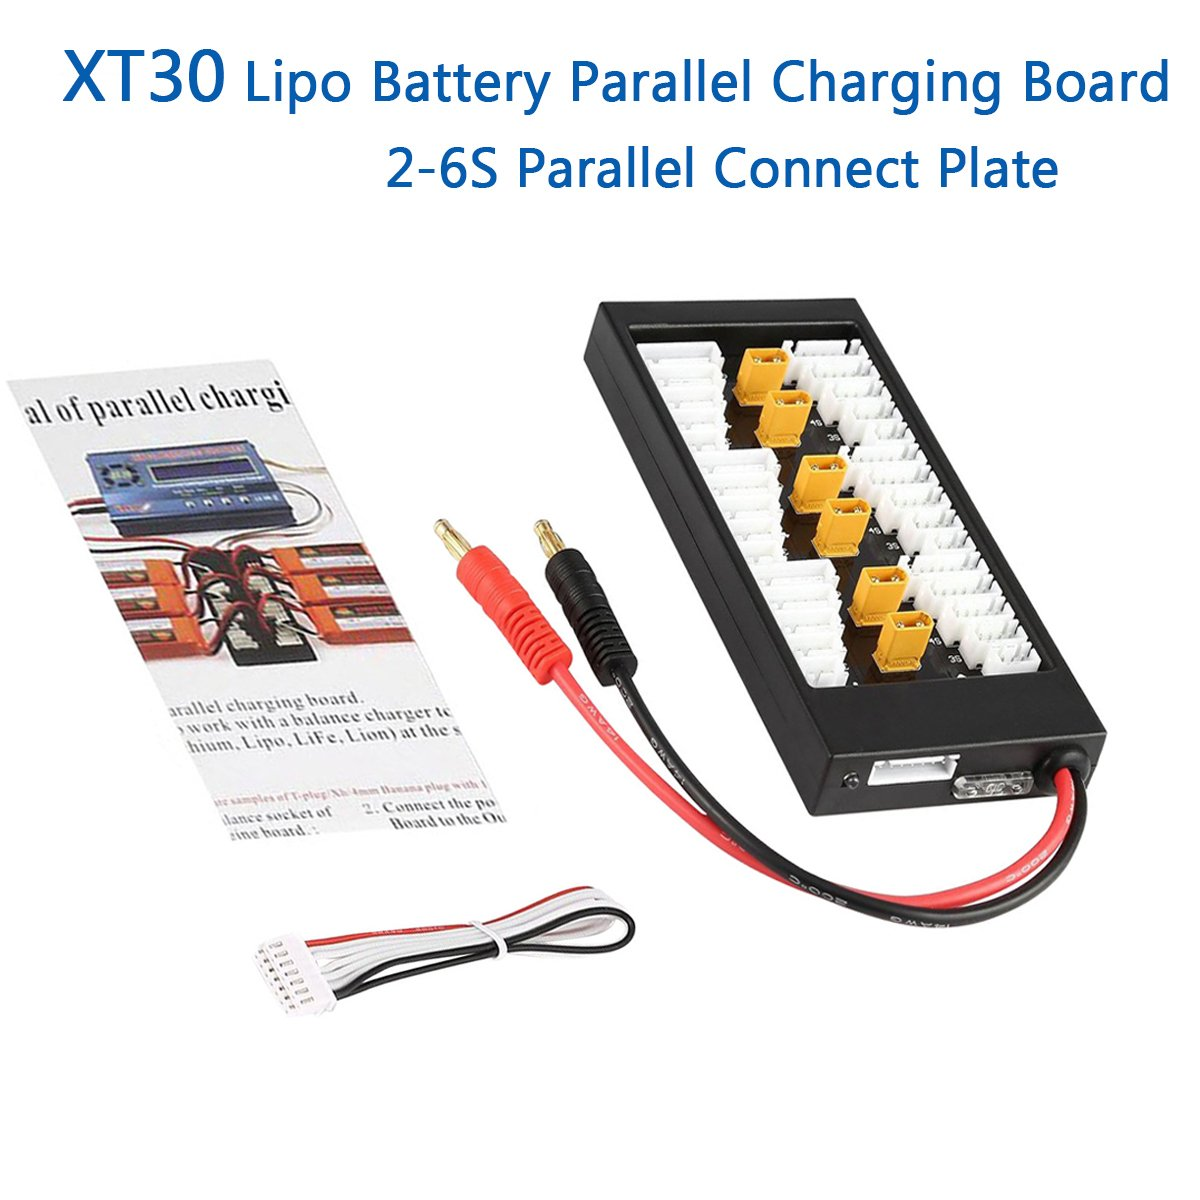 Xt30 Parallel Charging Board 2s 6s 40a Lithium Battery Adapter Wiring Batteries In Expansion Power Supply